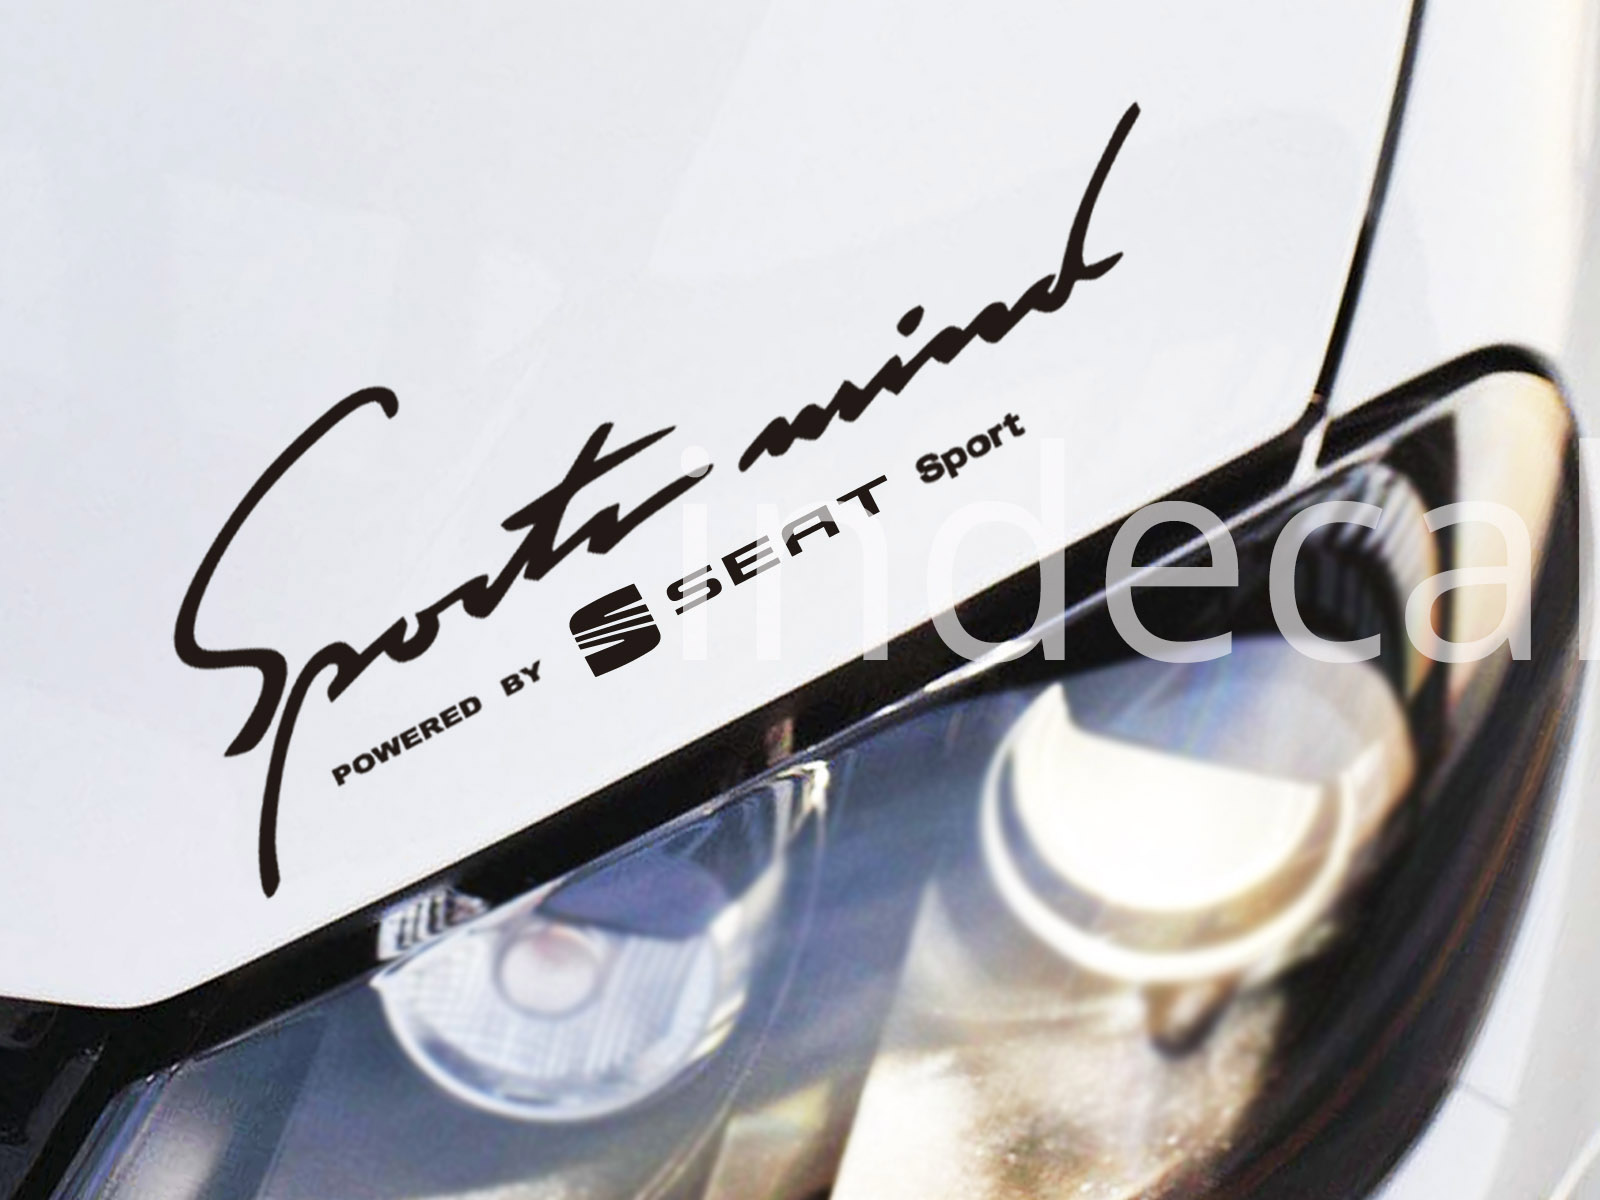 1 x Seat Sports Mind Sticker - Black